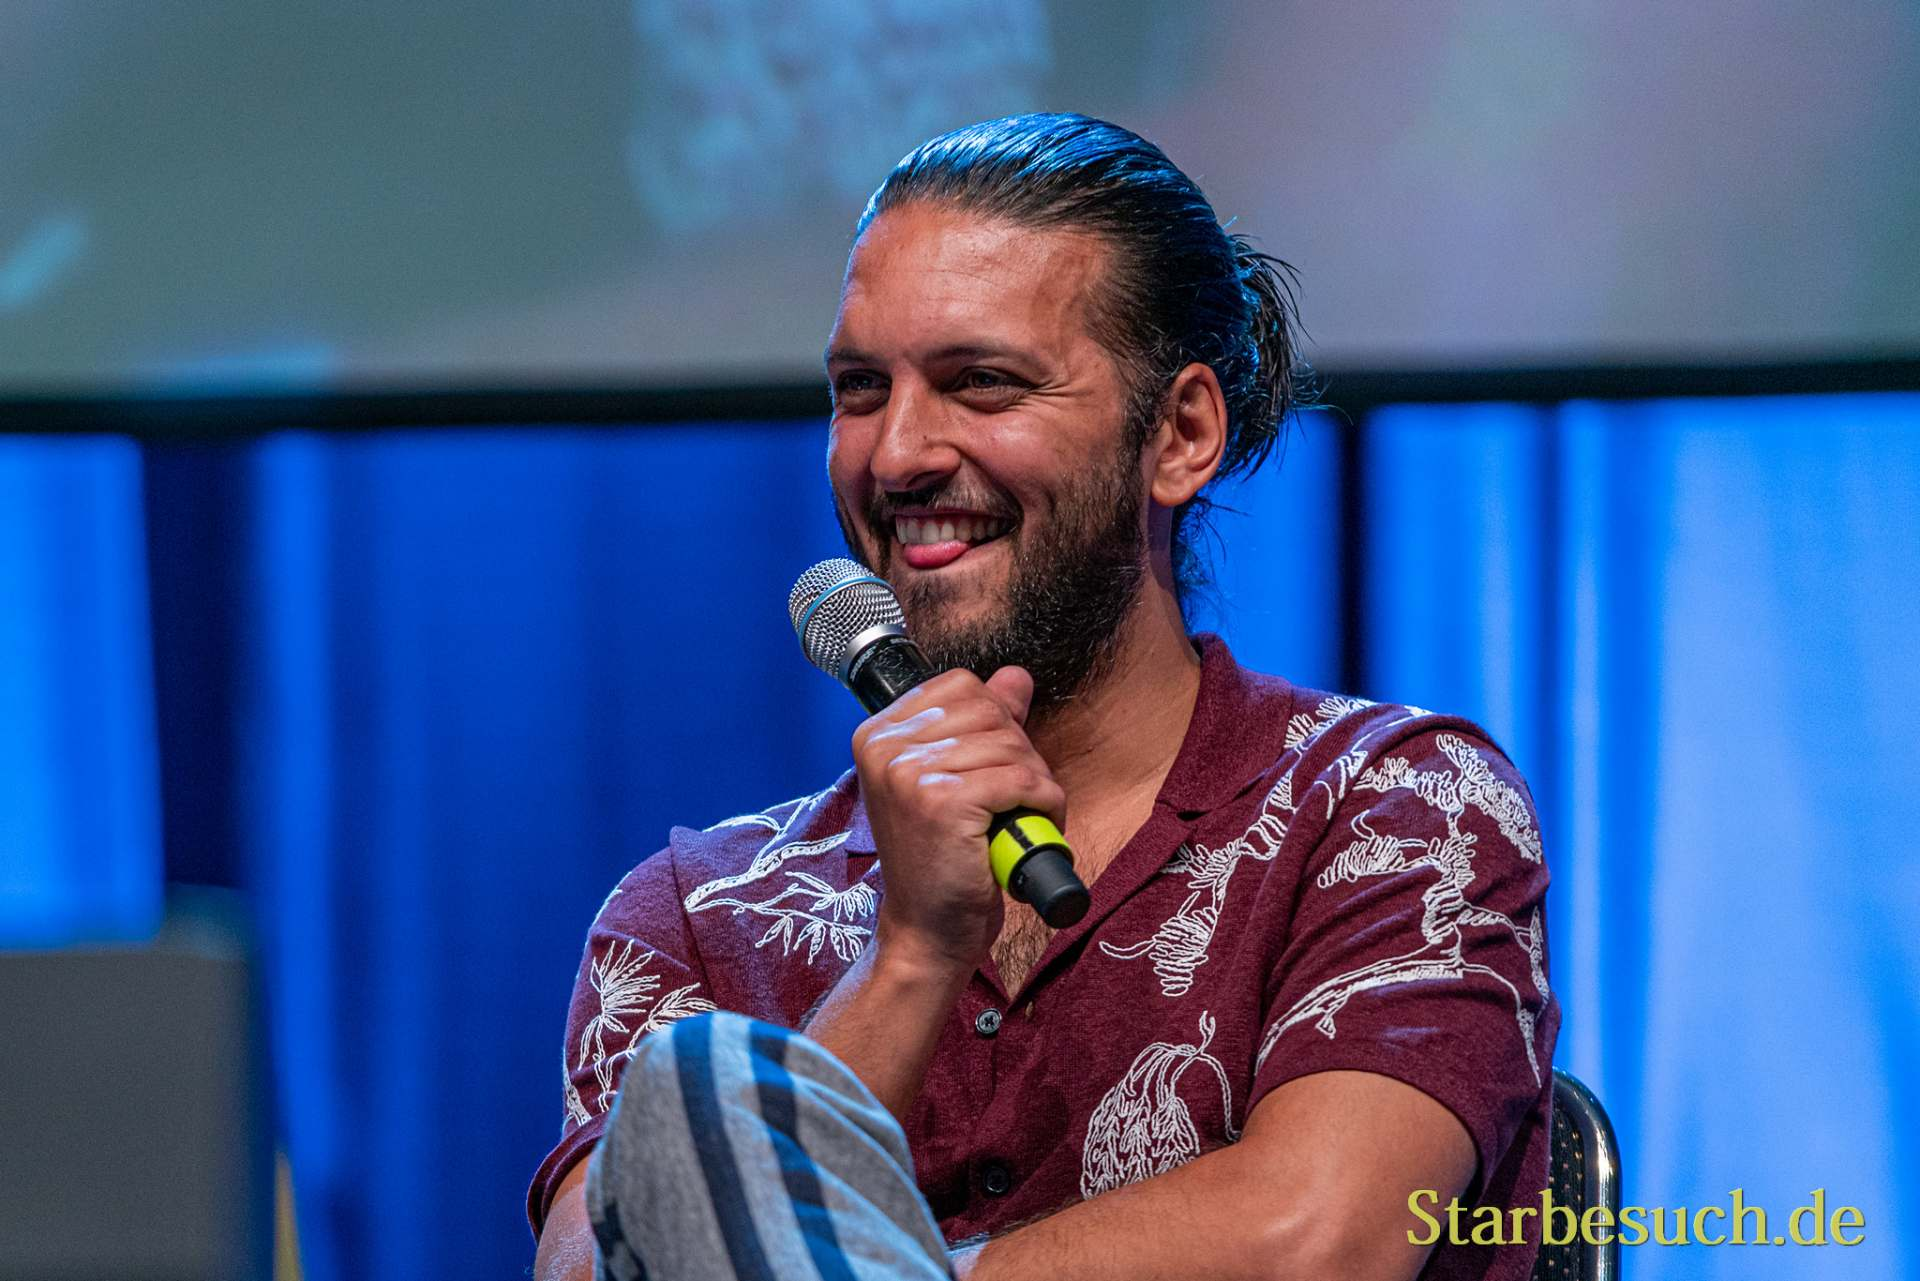 Bonn, Germany - June 8 2019: Shazad Latif (*1988, British actor - Star Trek: Discovery) at FedCon 28, a four day sci-fi convention. FedCon 28 took place Jun 7-10 2019.